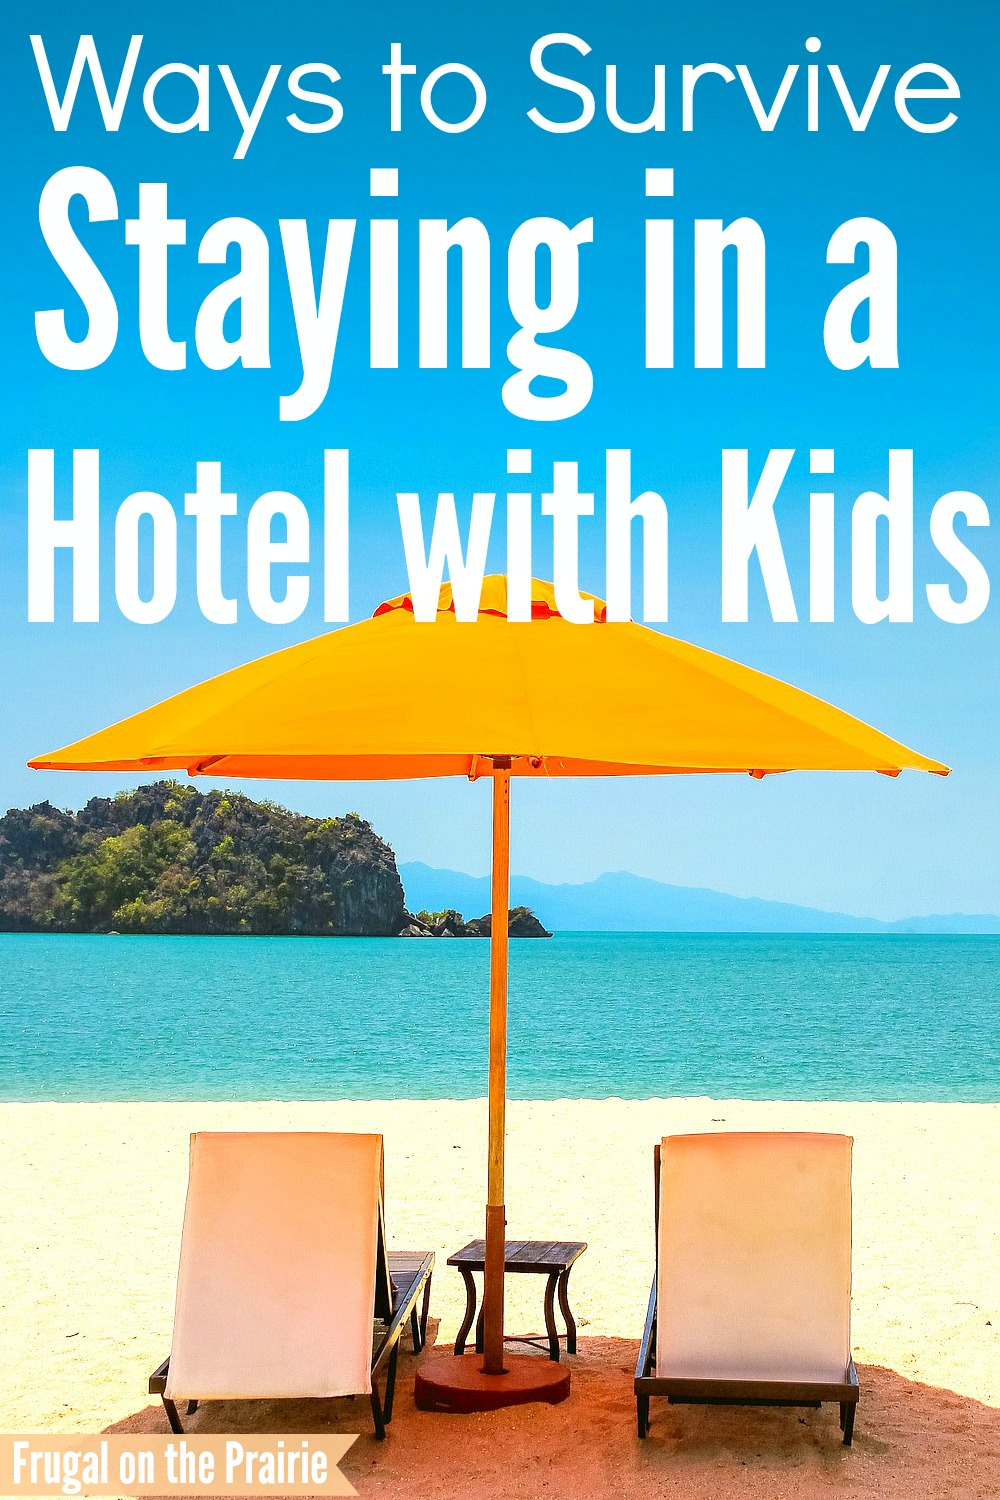 Wondering how to survive staying in a hotel with kids? Here are 14 awesome tips for keeping them happy, managing bedtime, and having a relaxing vacation!